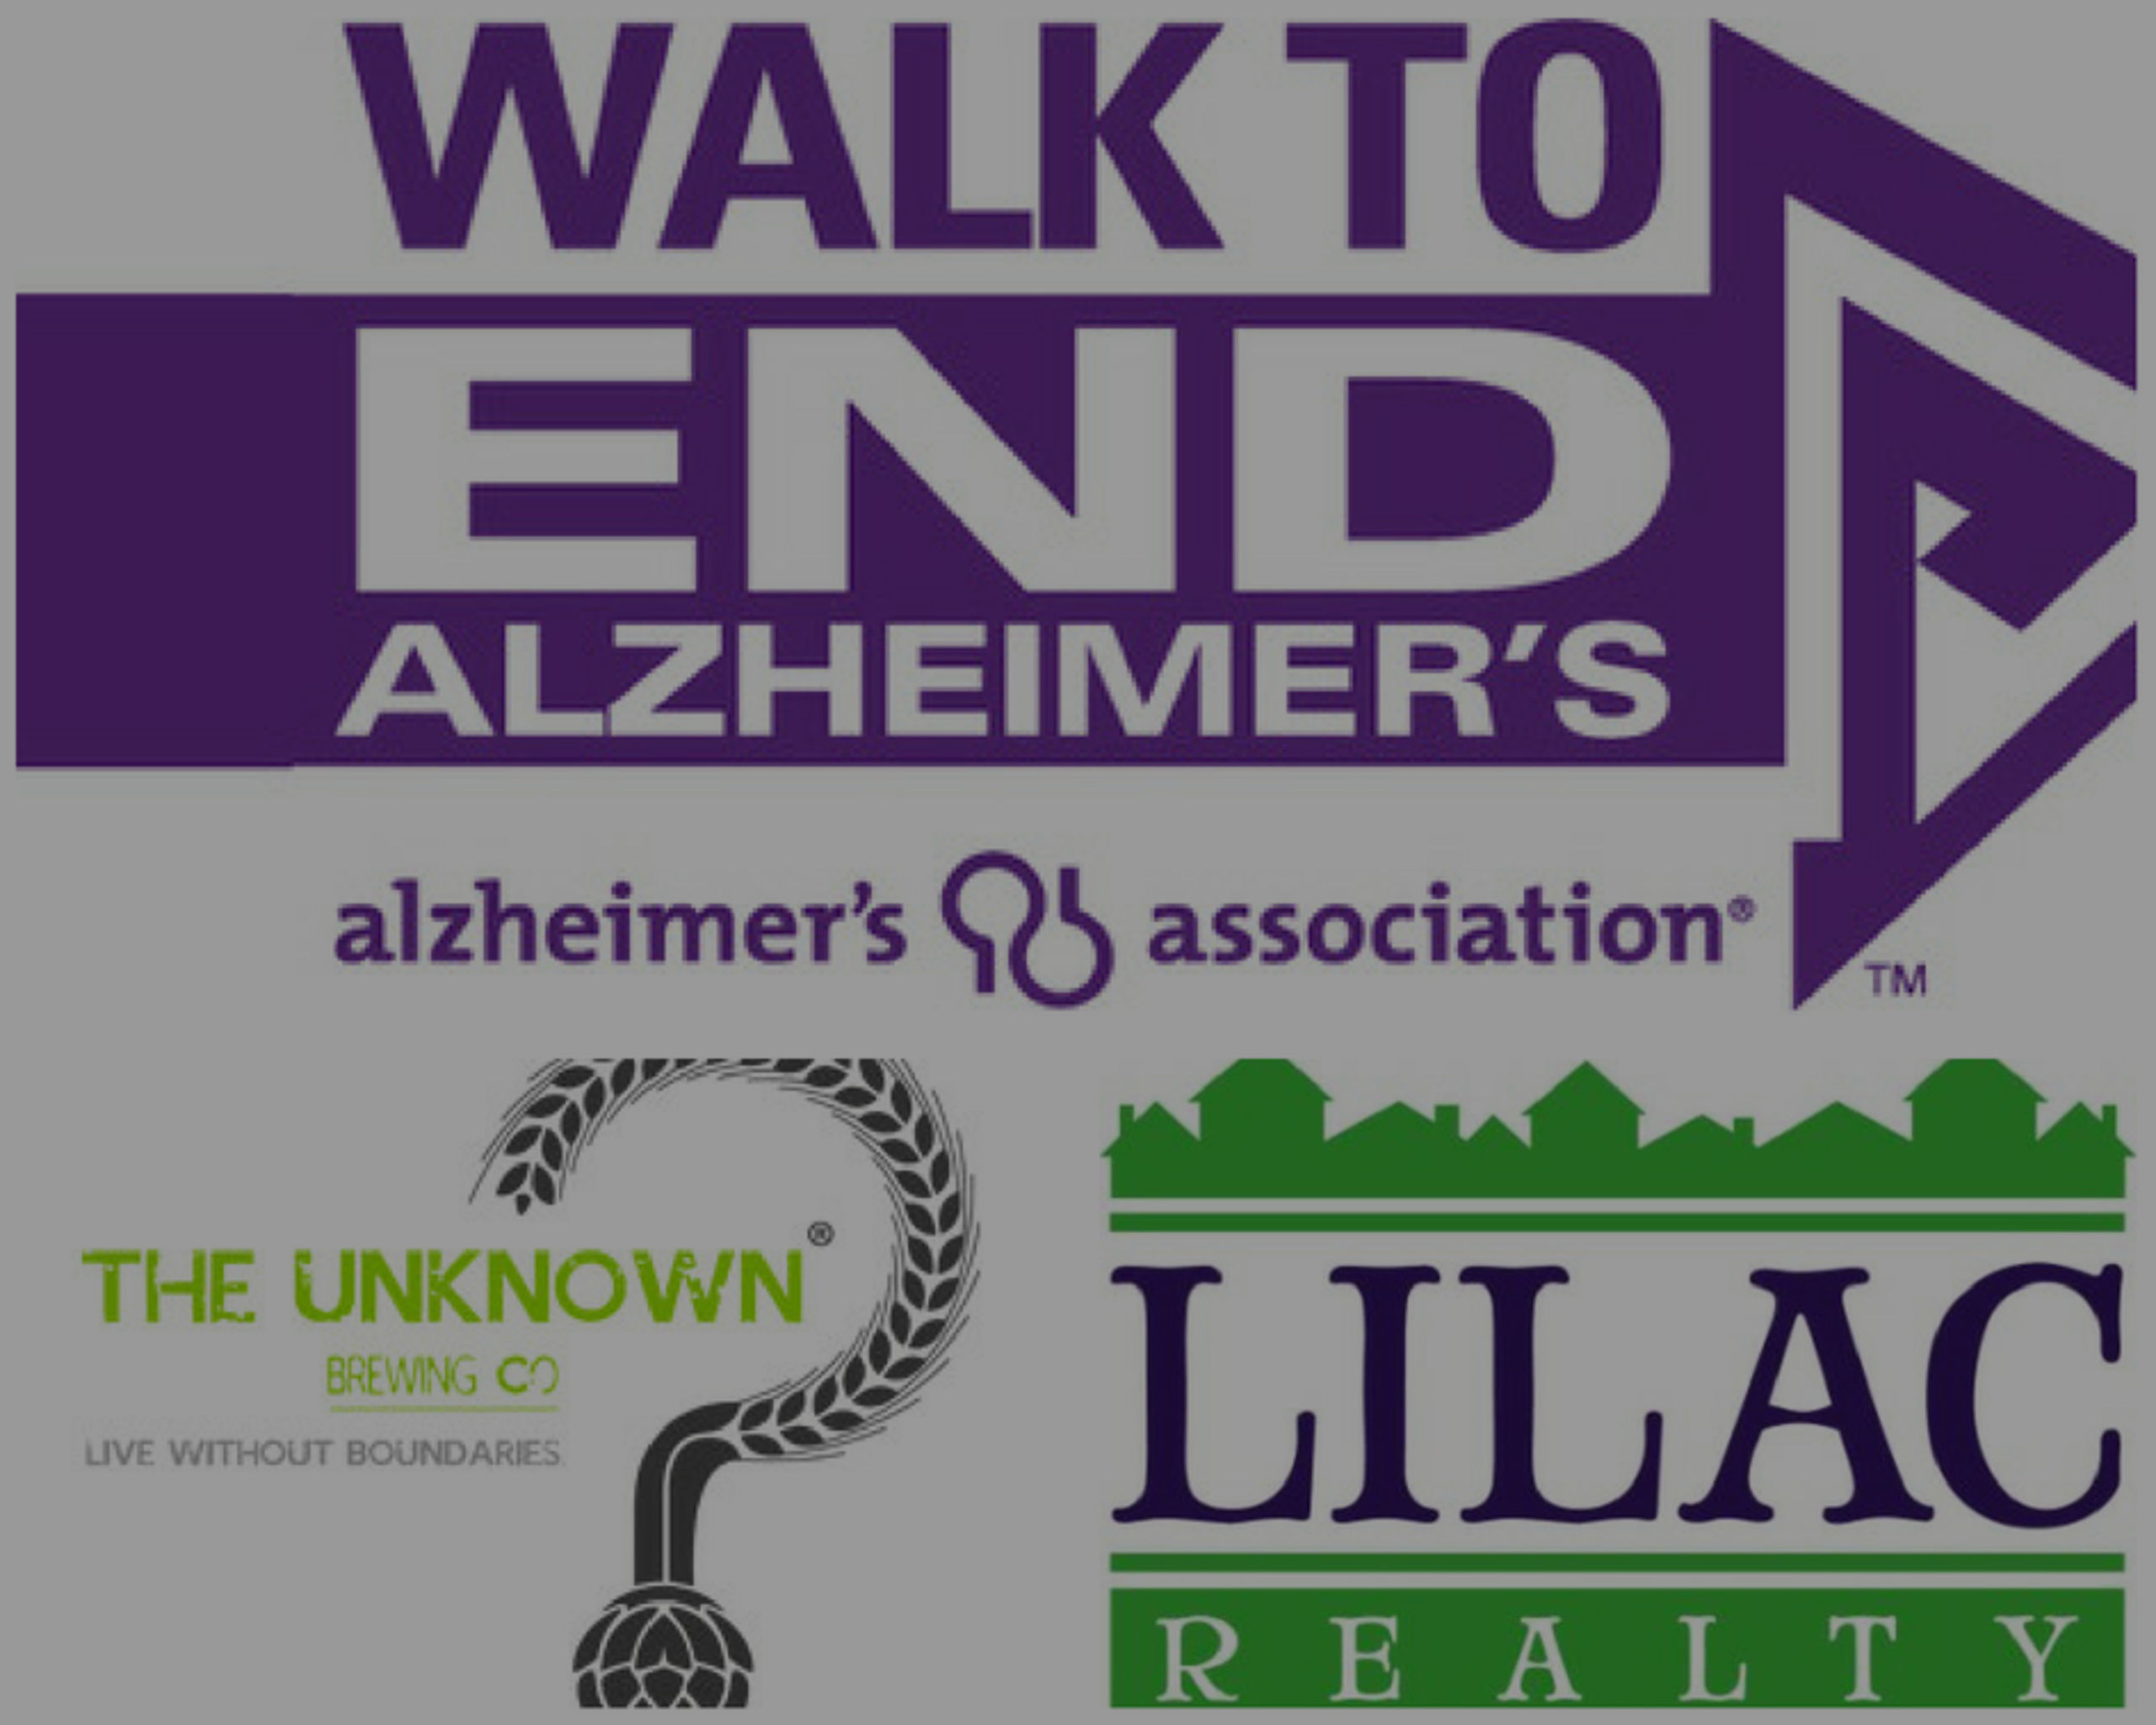 Lilac Realty Sponsors Team Unknown in 2018 Walk to End Alzheimer's